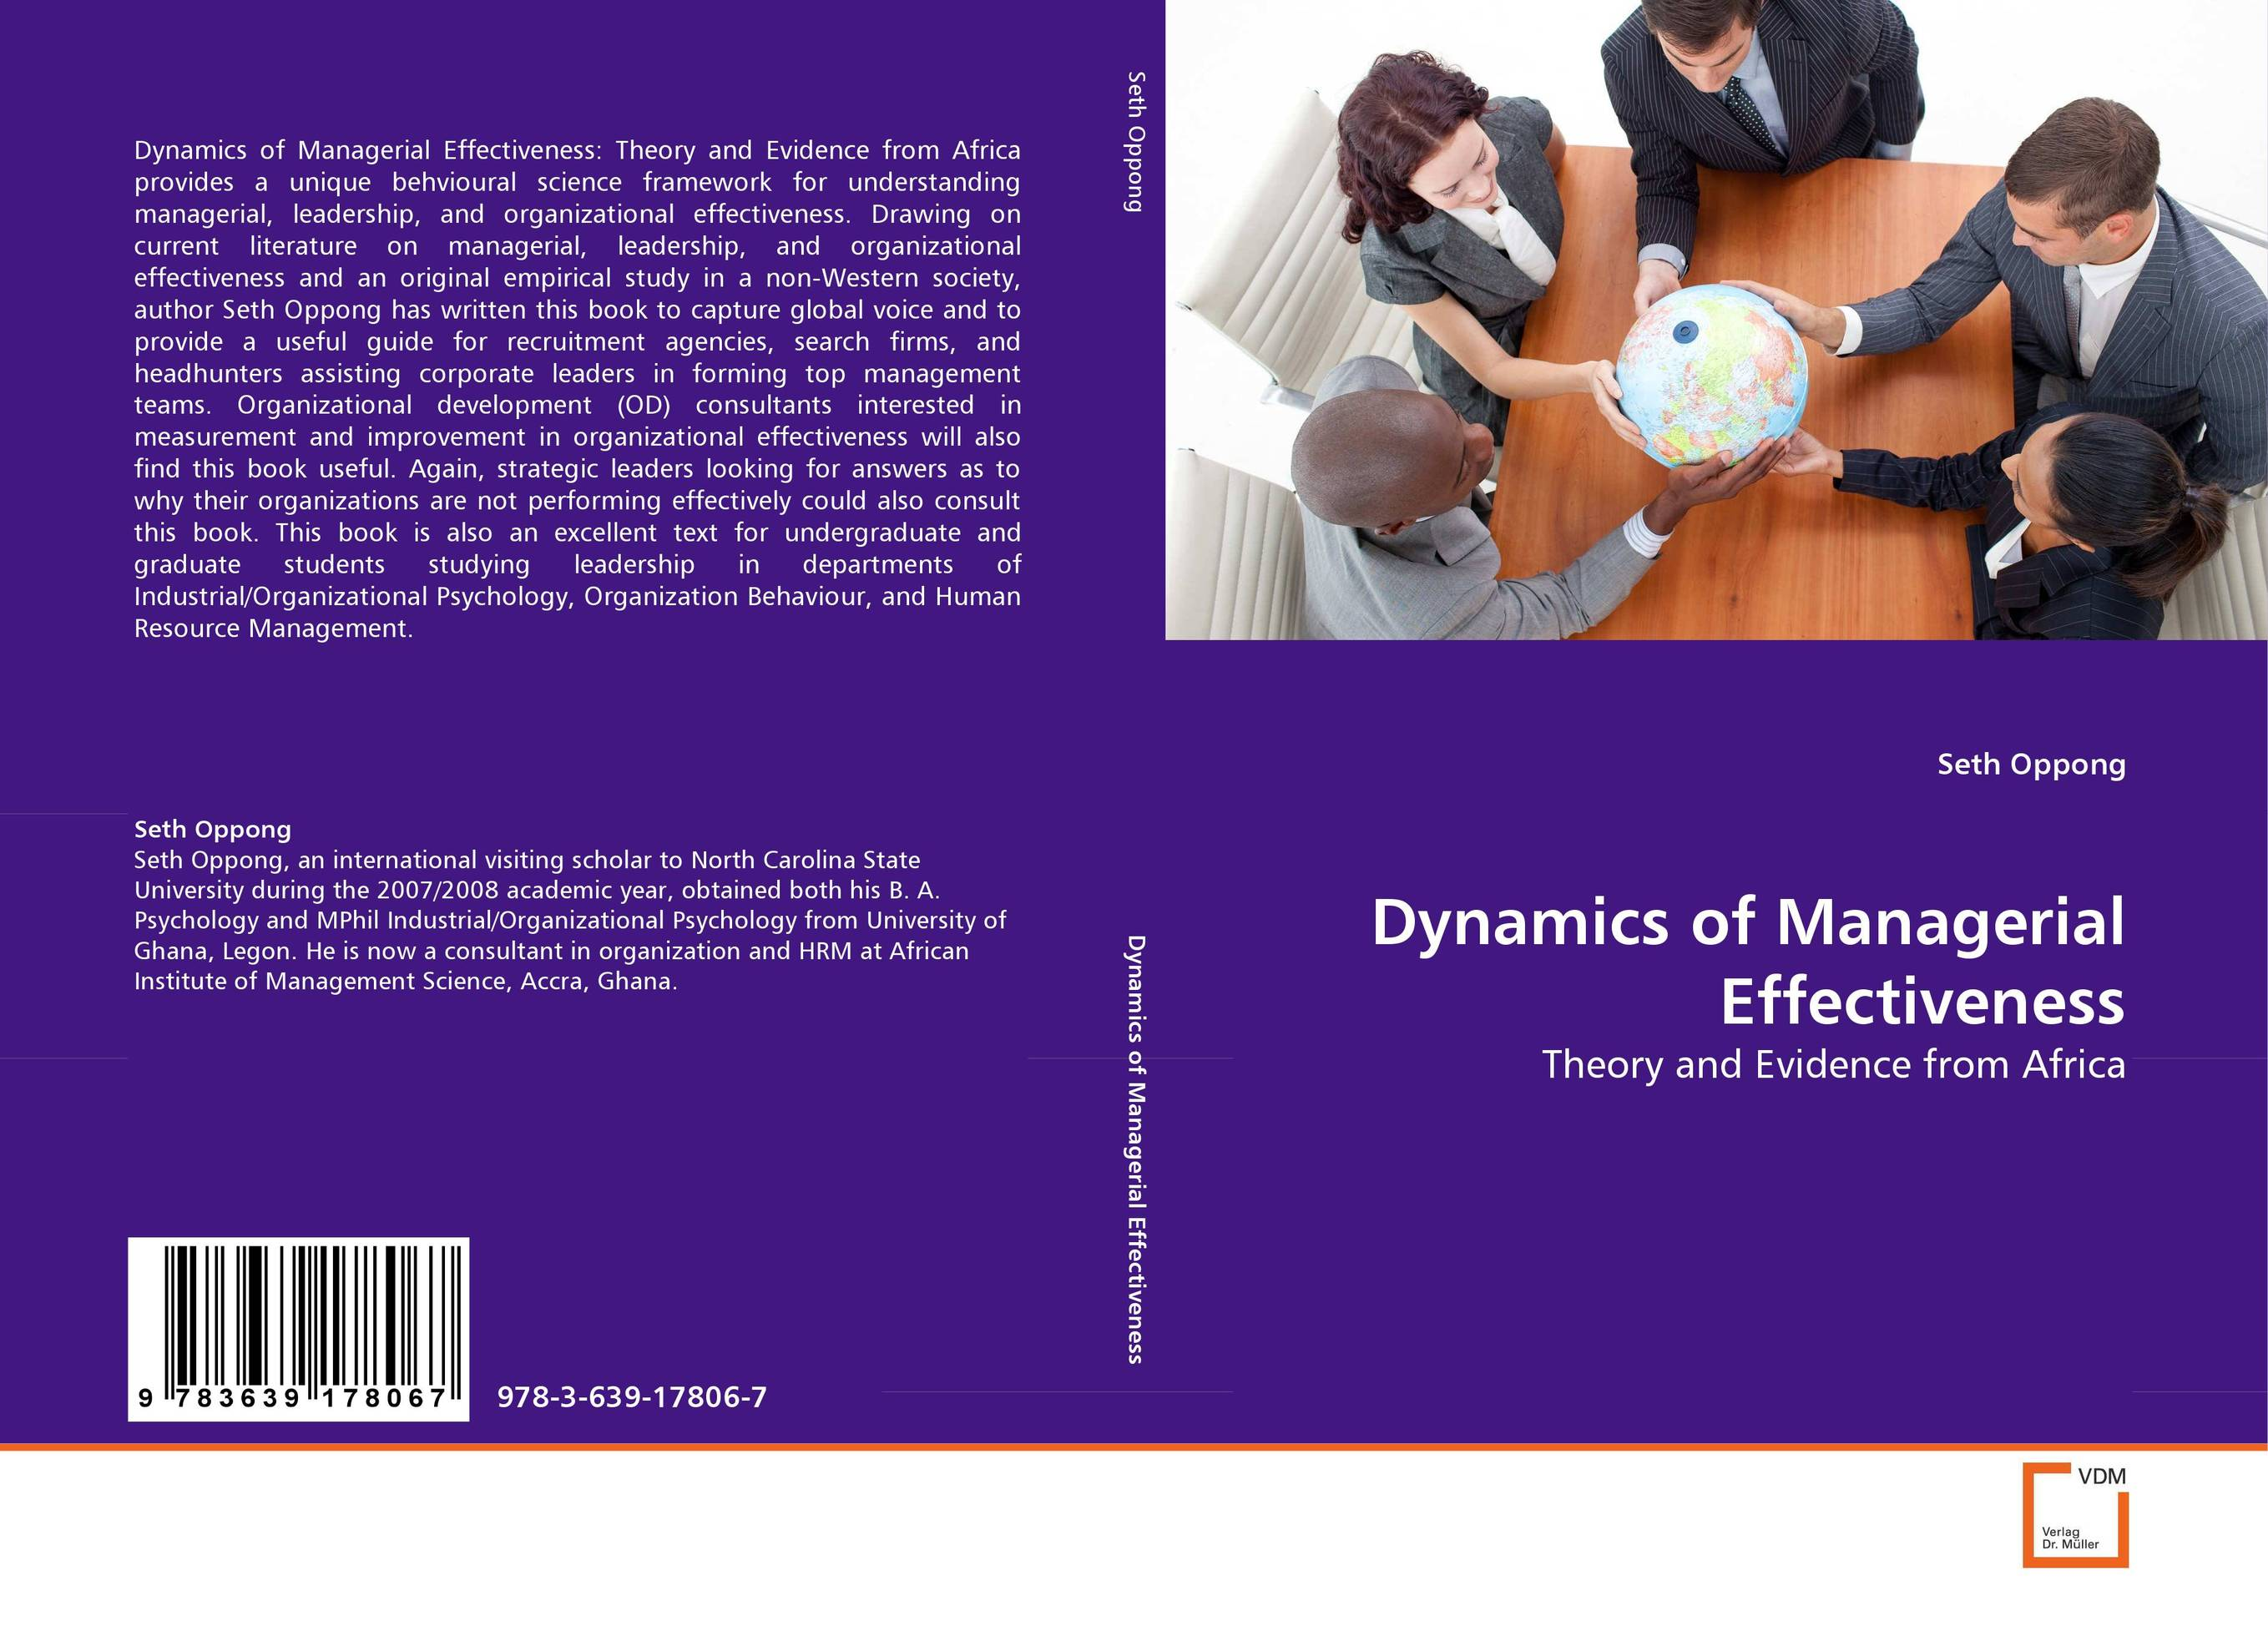 Dynamics of Managerial Effectiveness купить